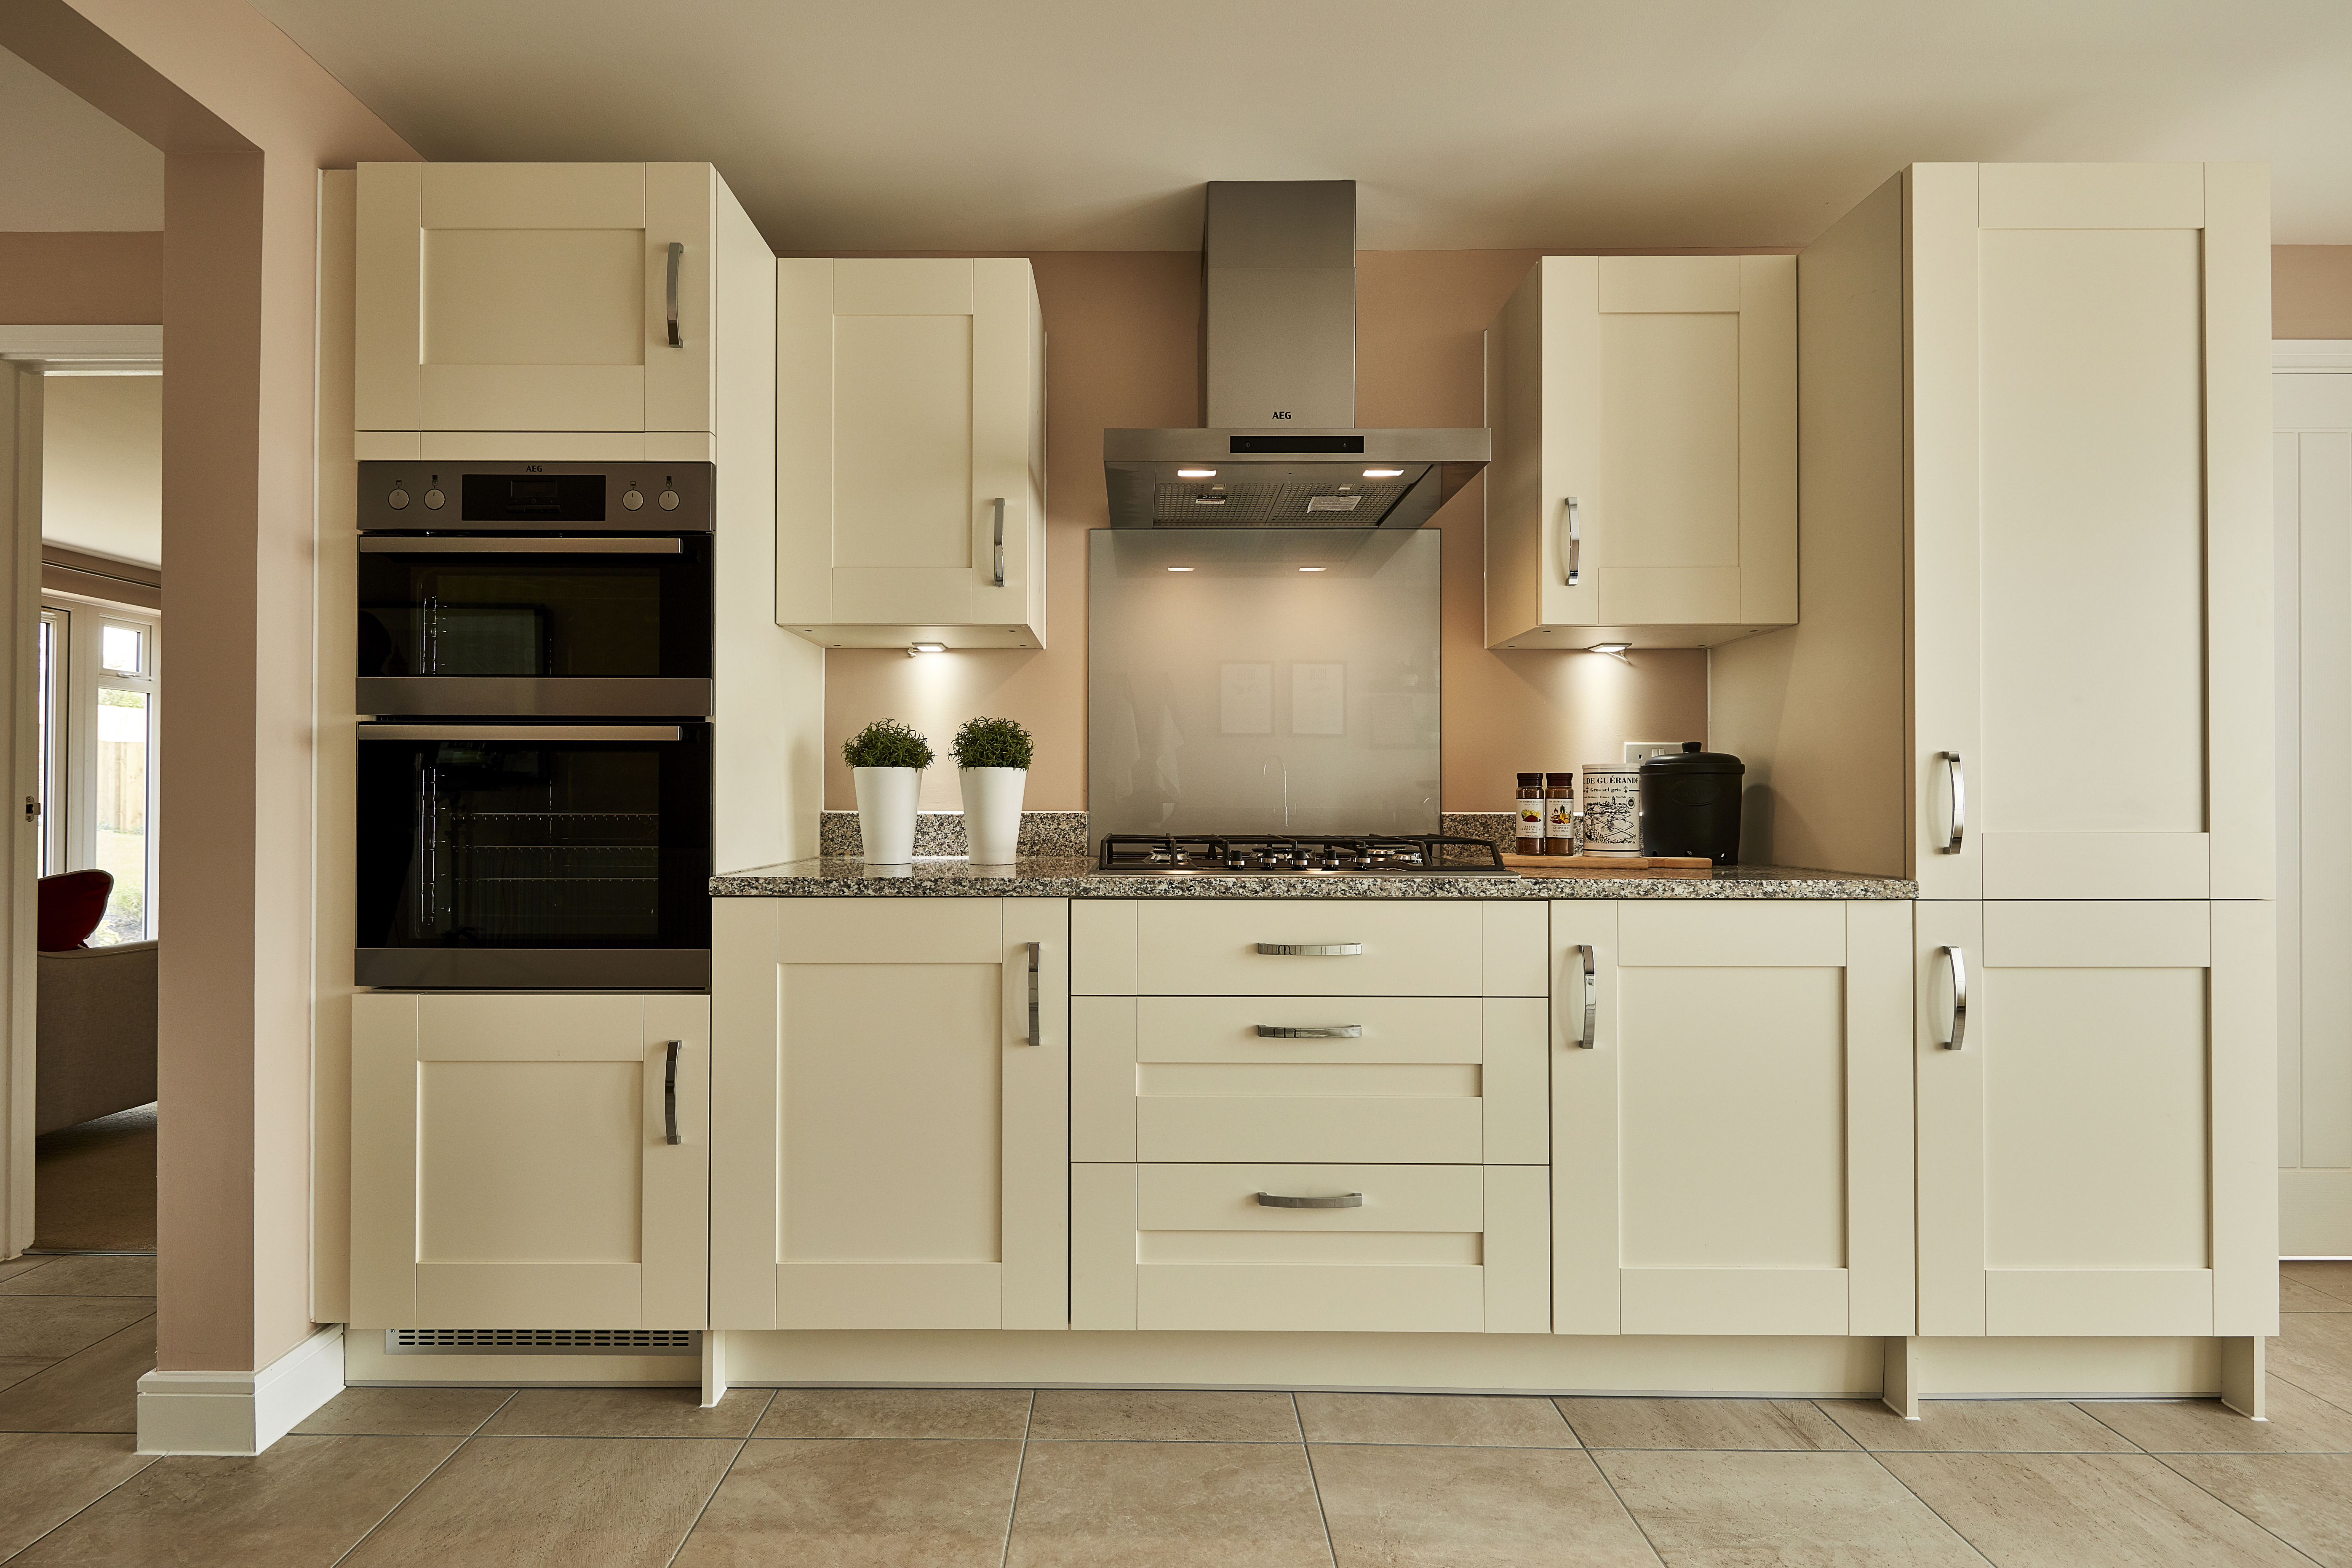 TW OX Thornbury Green_Eynsham_NA45_Marford_Kitchen (2)